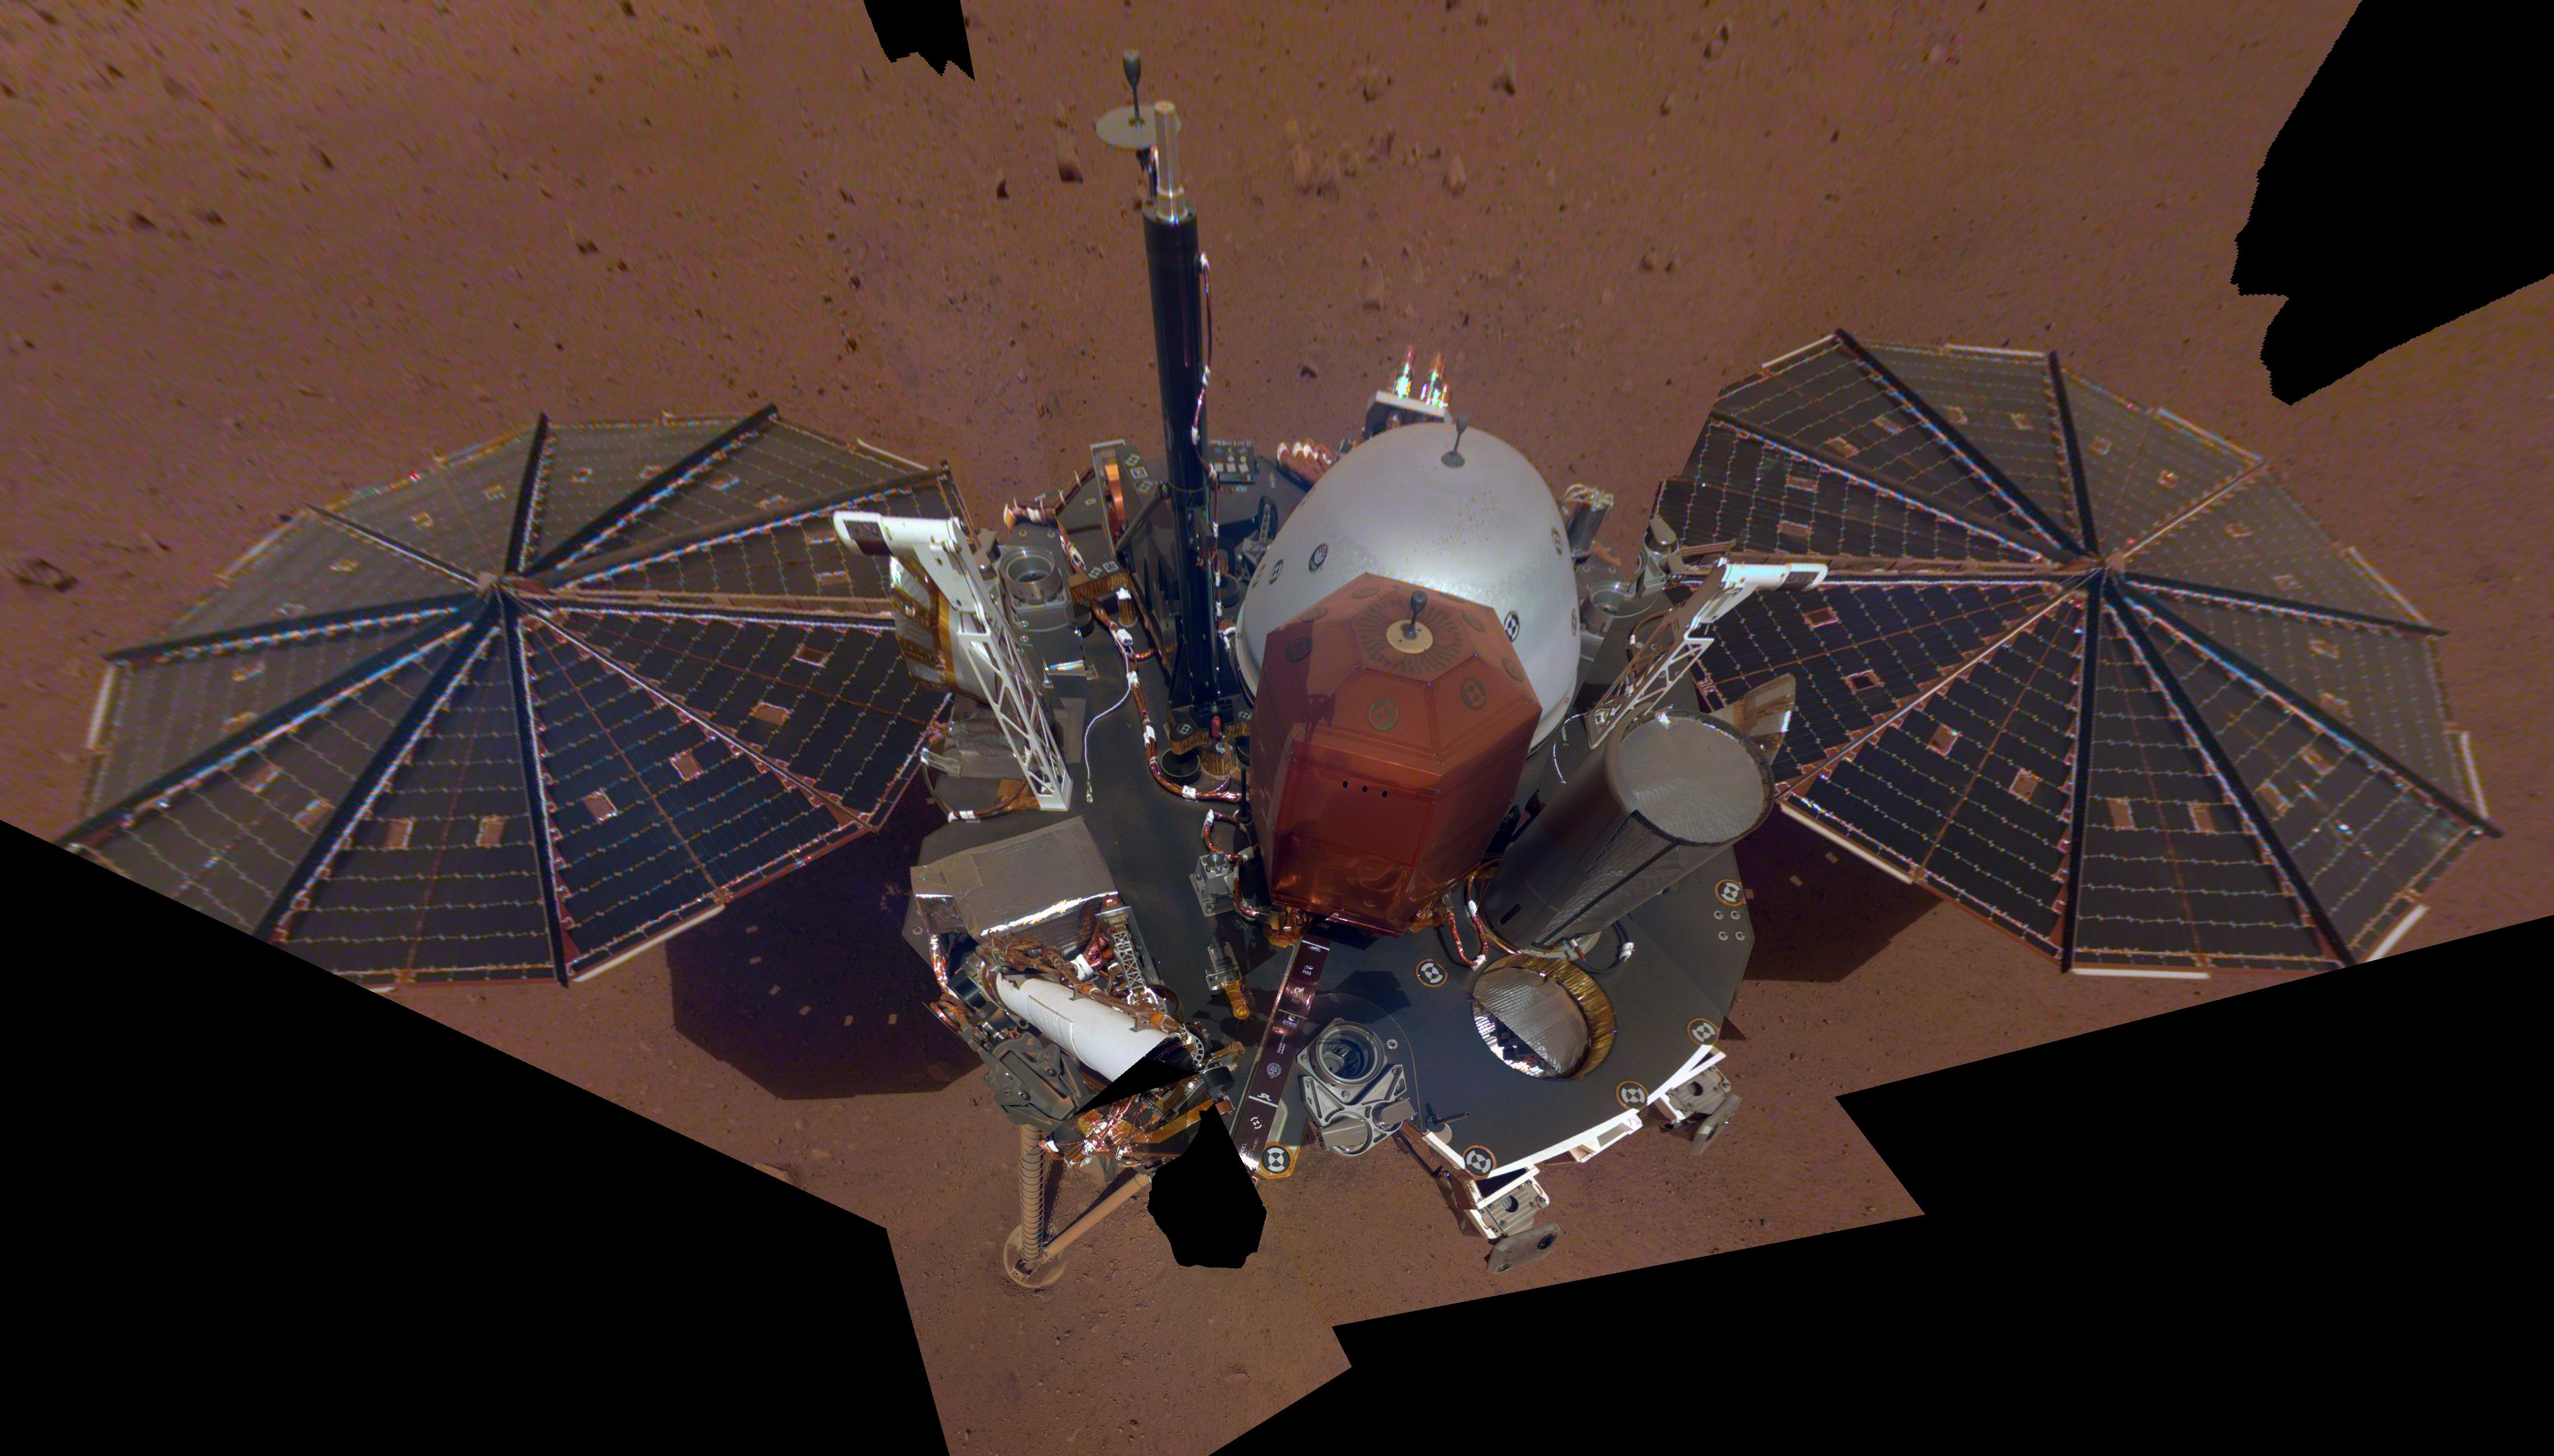 If you think winter in Massachusetts is cold, it could be -80 degrees on Mars; NASA now offers daily Martian weather updates